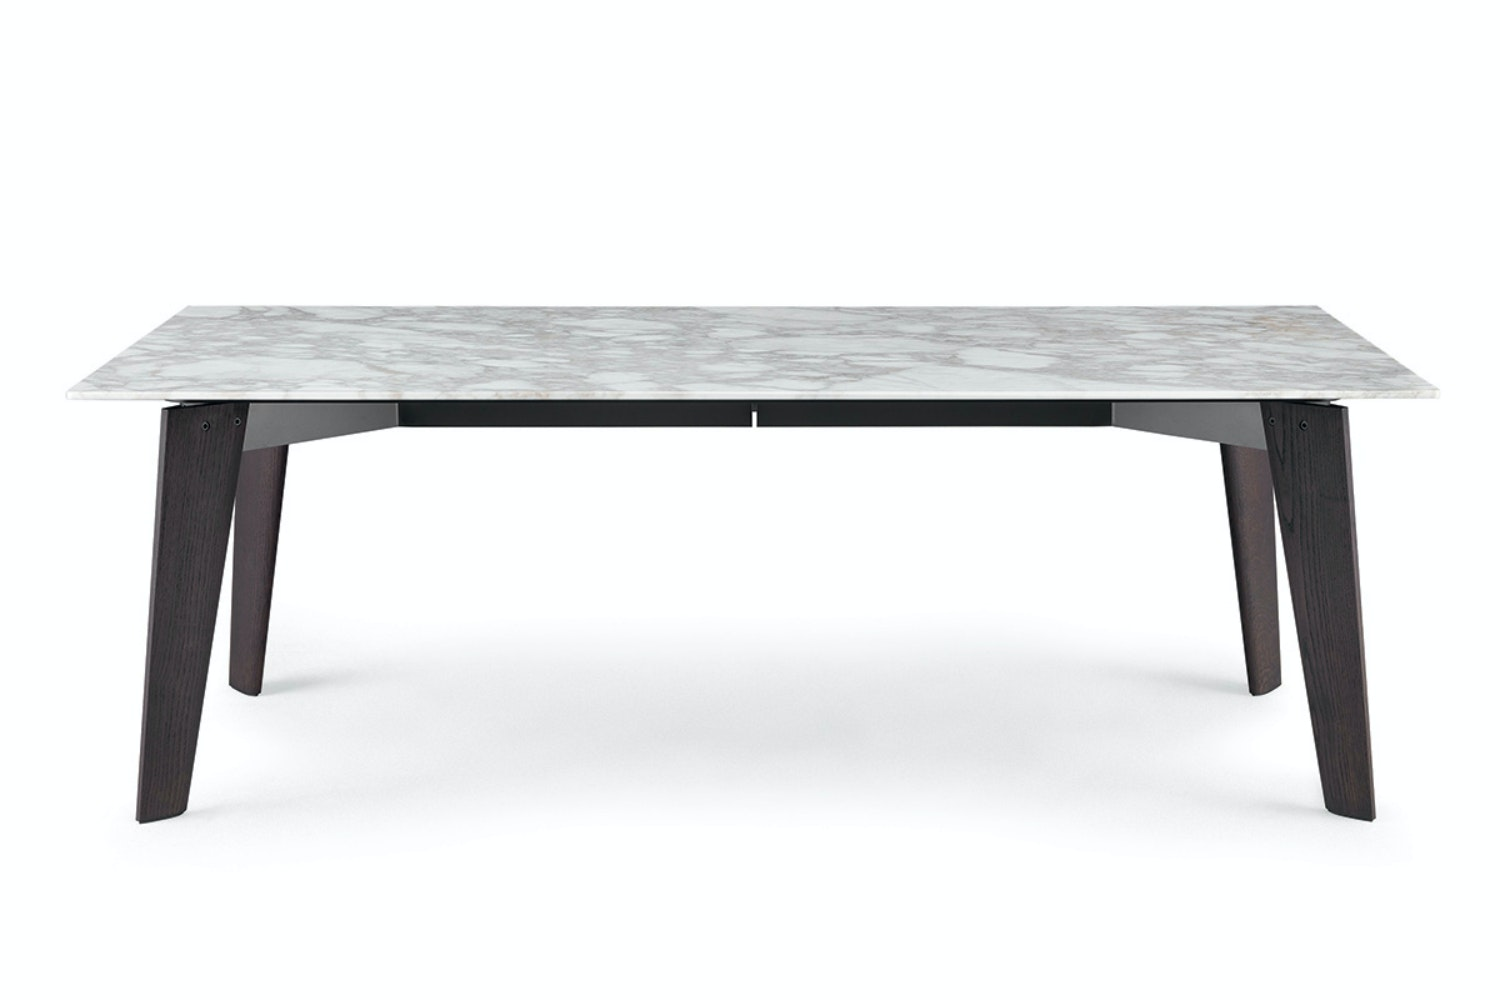 Howard Table in Marble by J. M. Massaud for Poliform